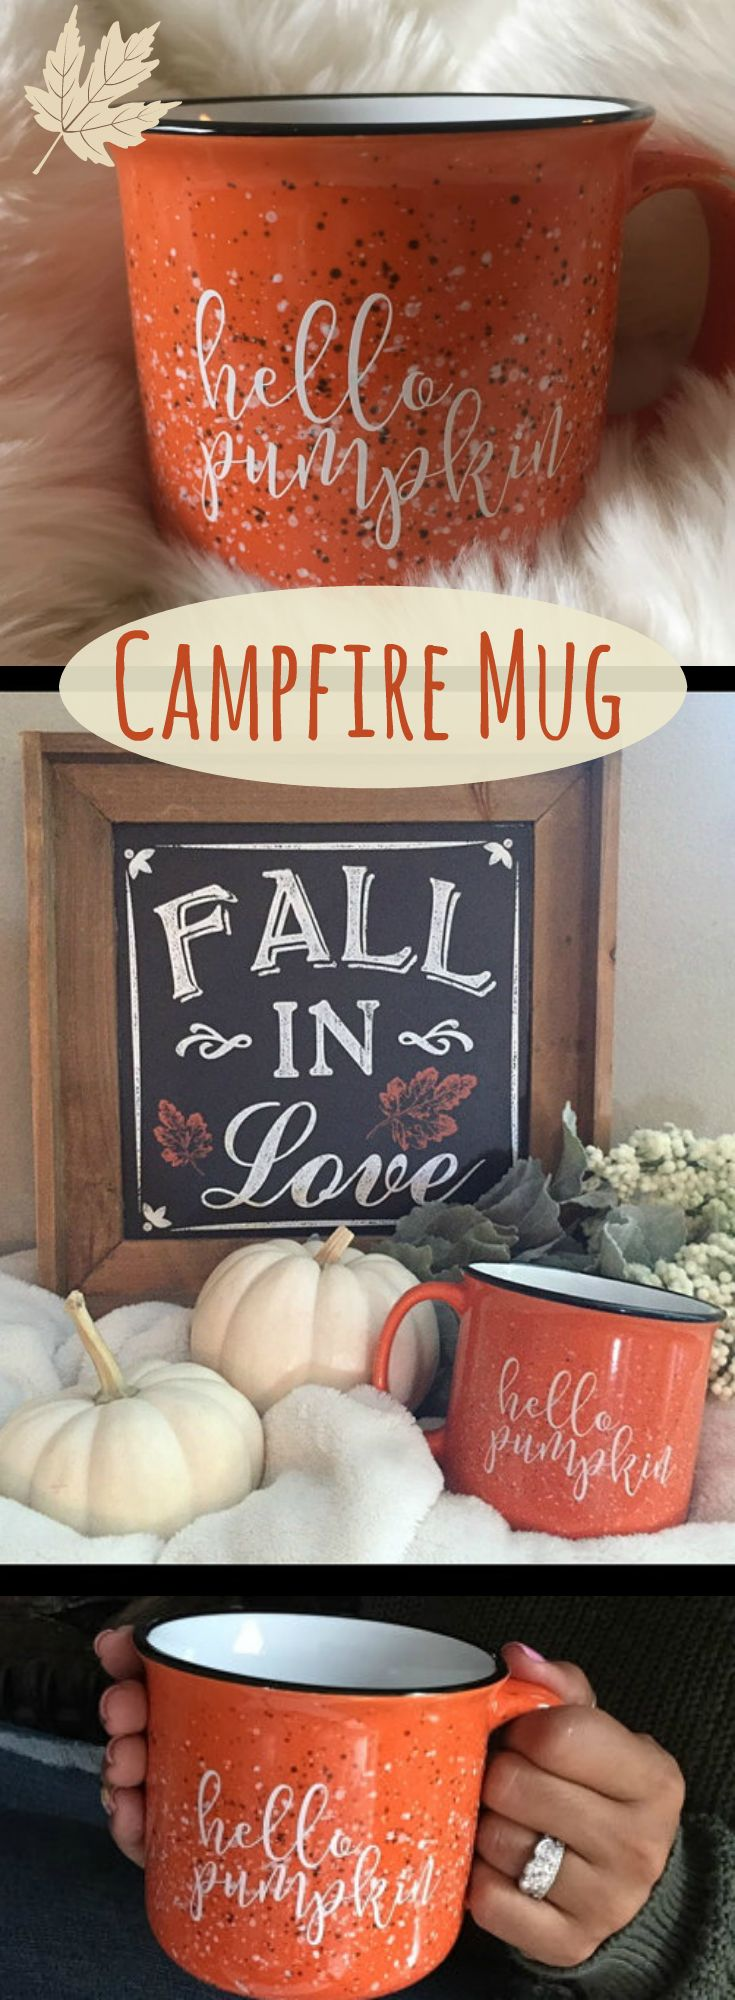 Hello Pumpkin Campfire Mug - 15 oz, Pumpkin Spice Latte, Coffee Mug, Fall Decor, Pumpkin Decor, Coffee Cup, Ceramic. Cozy up to the fire with your favorite fall inspired beverage.